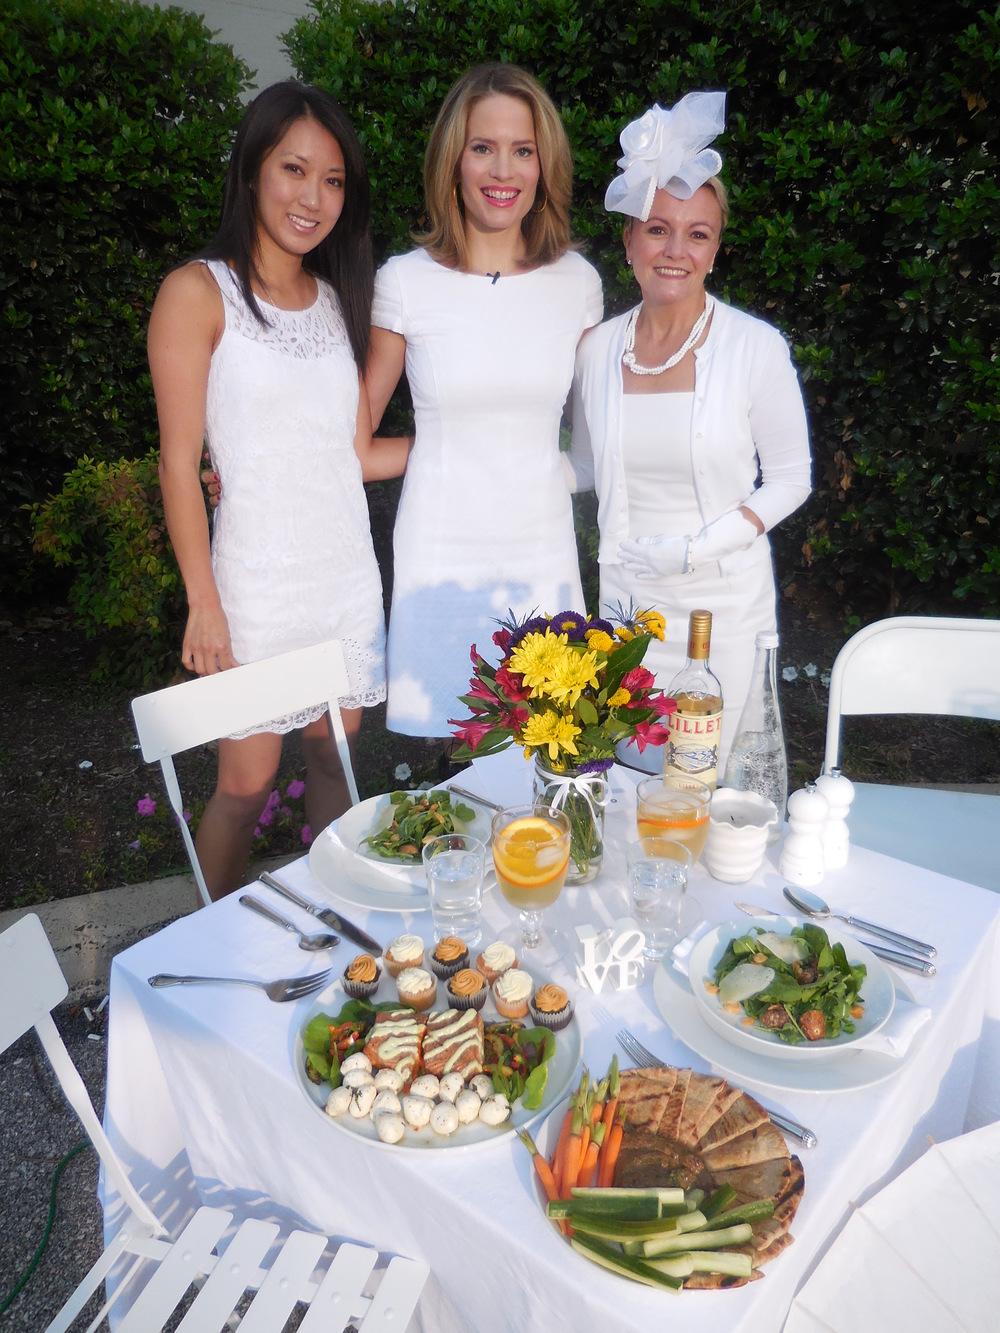 Diner en Blanc, Diner en Blanc Philadelphia, Debphl, Debphl14, CBS, CBS Philly, PR, Media Shoot, TV shoot